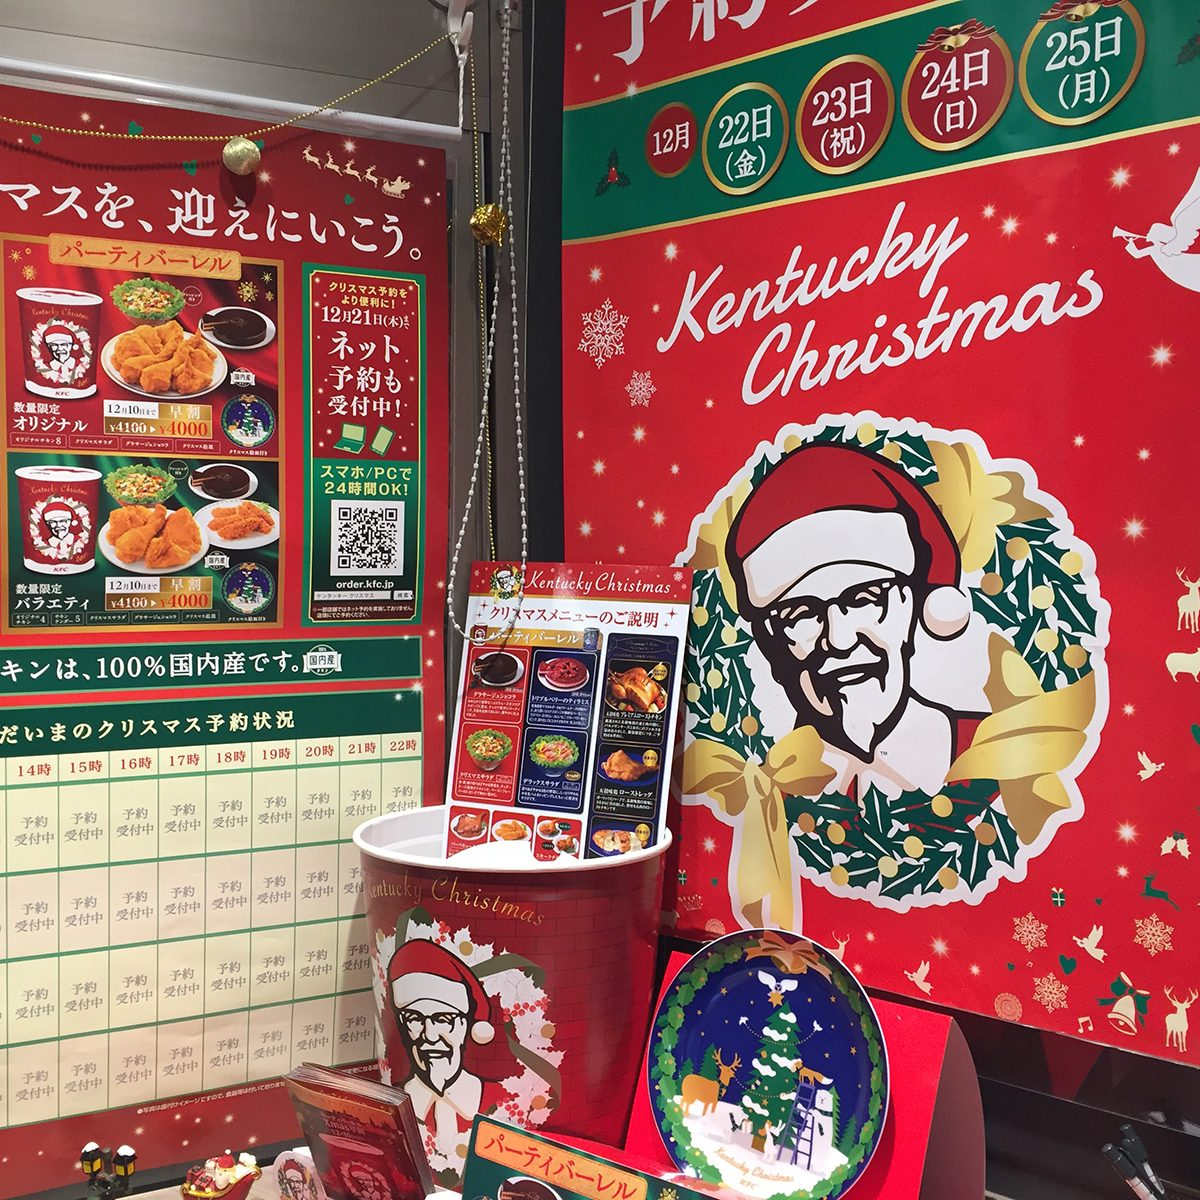 Ueno, Tokyo, Japan-November 16, 2017: KFC Kentucky Fried Chicken Christmas specials advertised in Tokyo. KFC is seen as traditional in Japan.